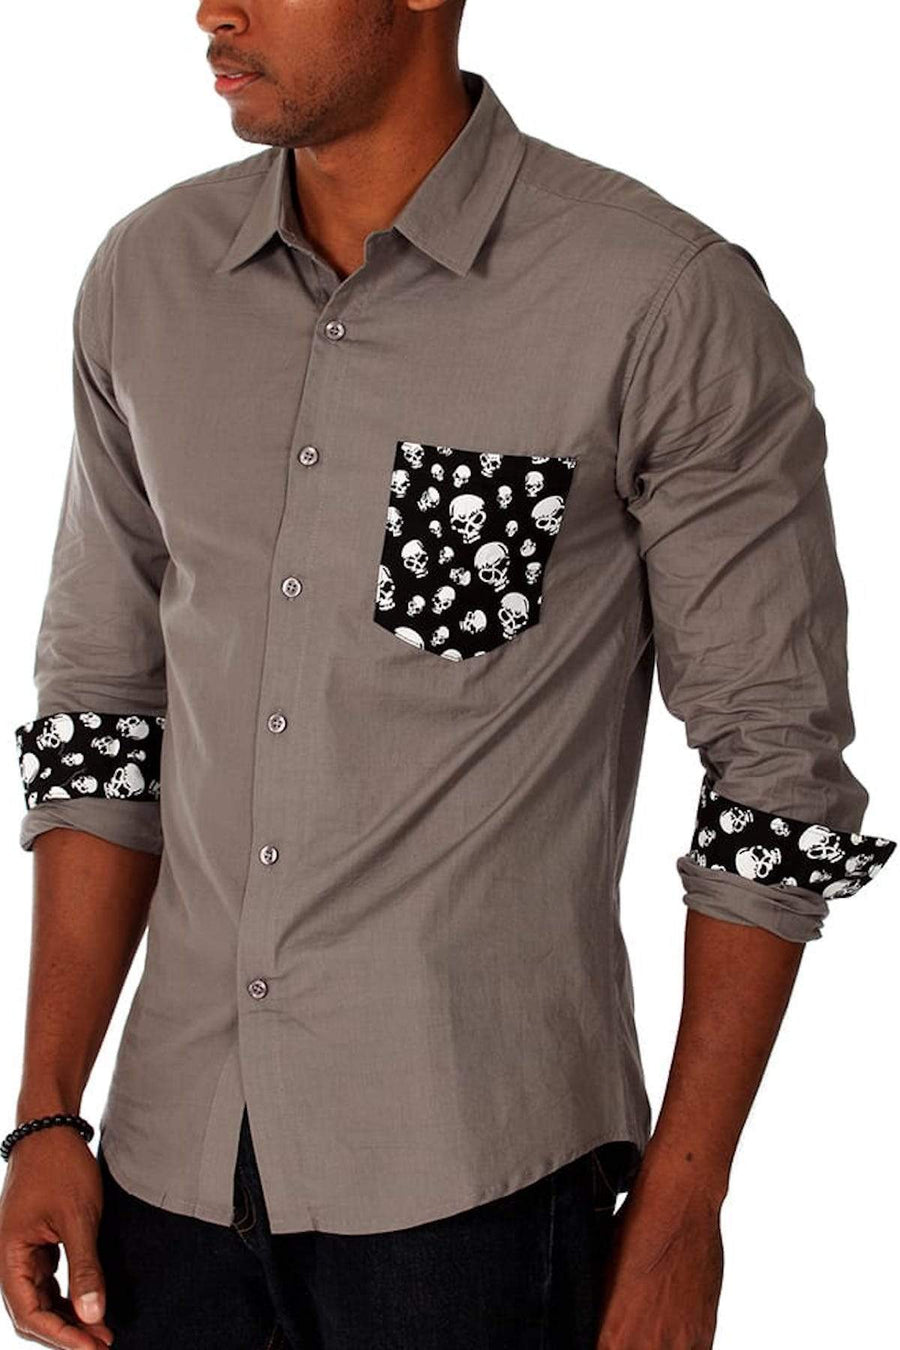 Shirts - 00 Nothing Grey Skullball Button-Up -   jetcube